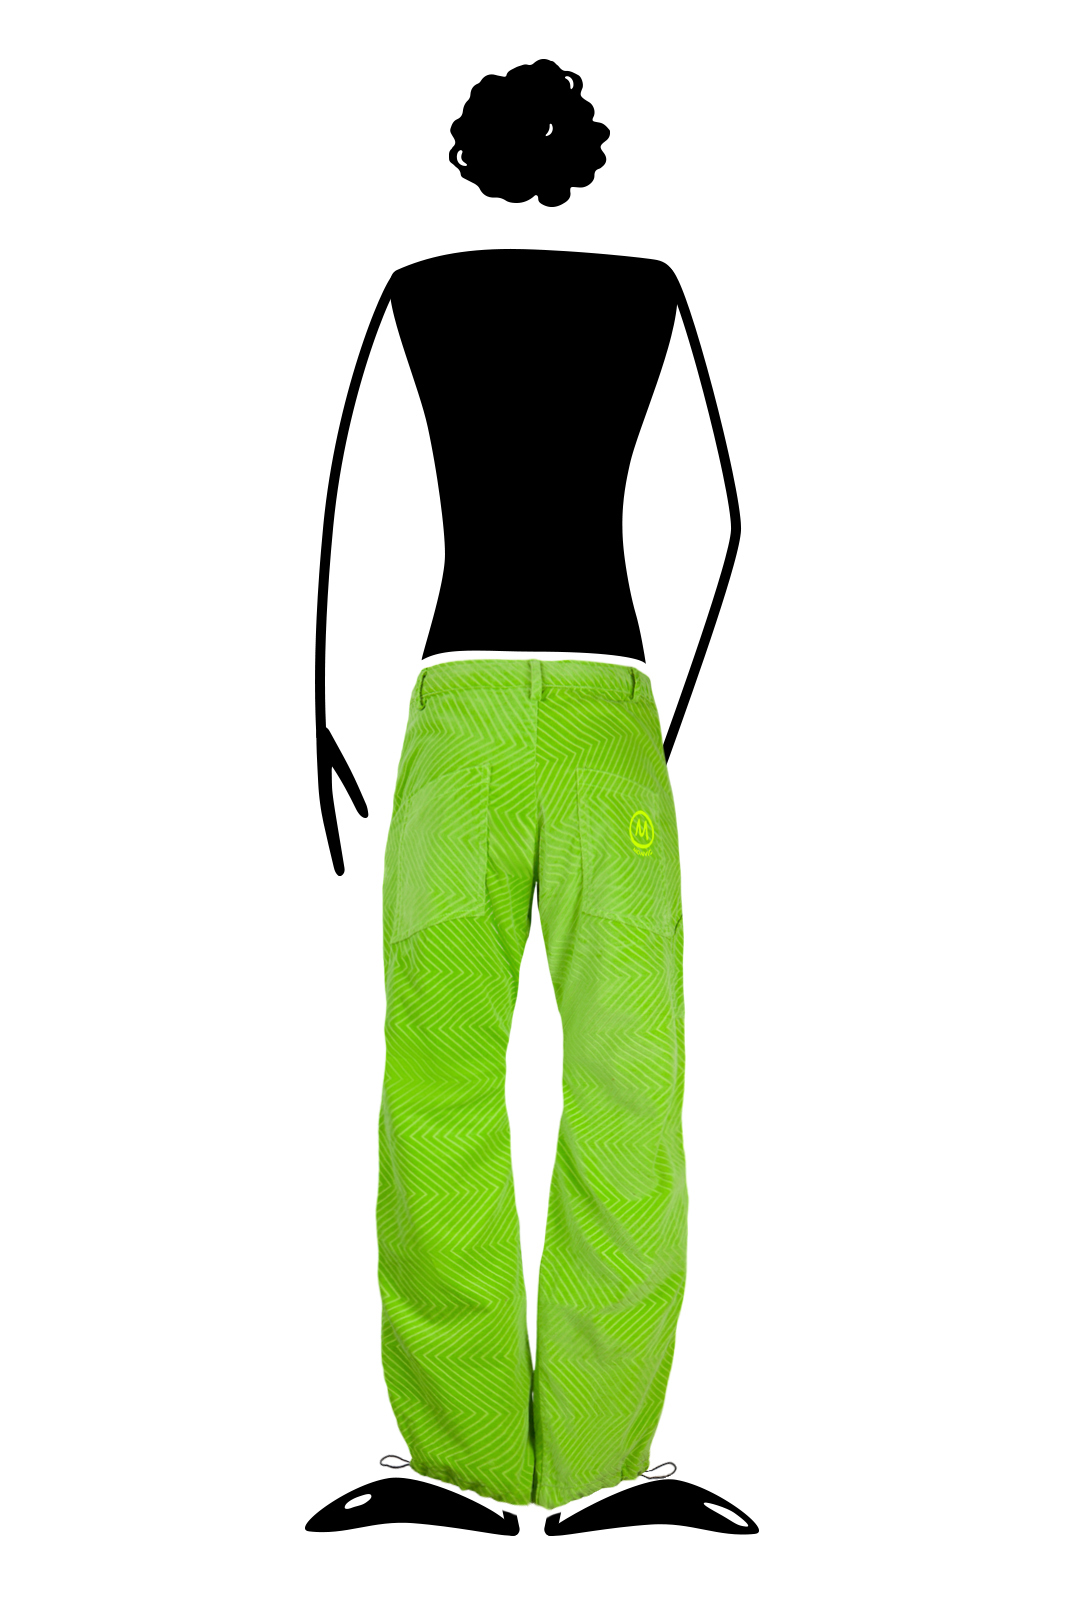 Men's Zig zag velvet trousers green lime for climbing GRILLO Monvic